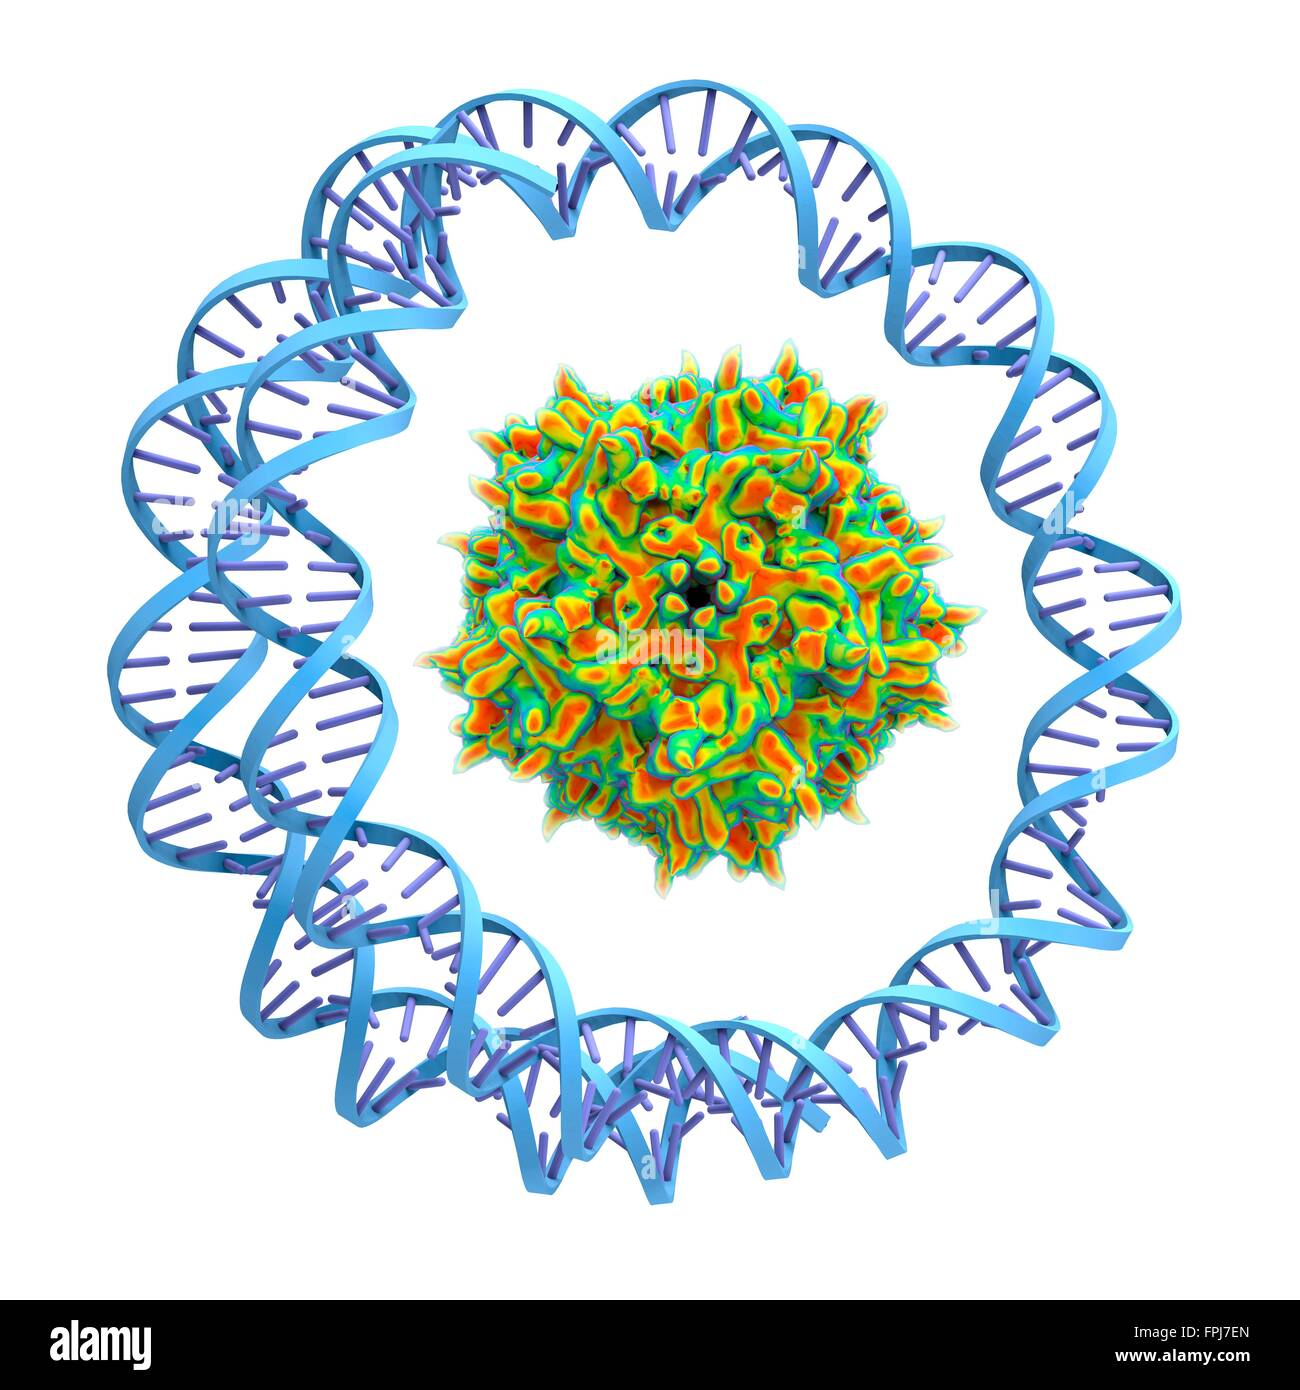 Adeno-associated virus wrapped around by a circular DNA str . Computer artwork. Adeno-associated viruses (AAVs) - Stock Image